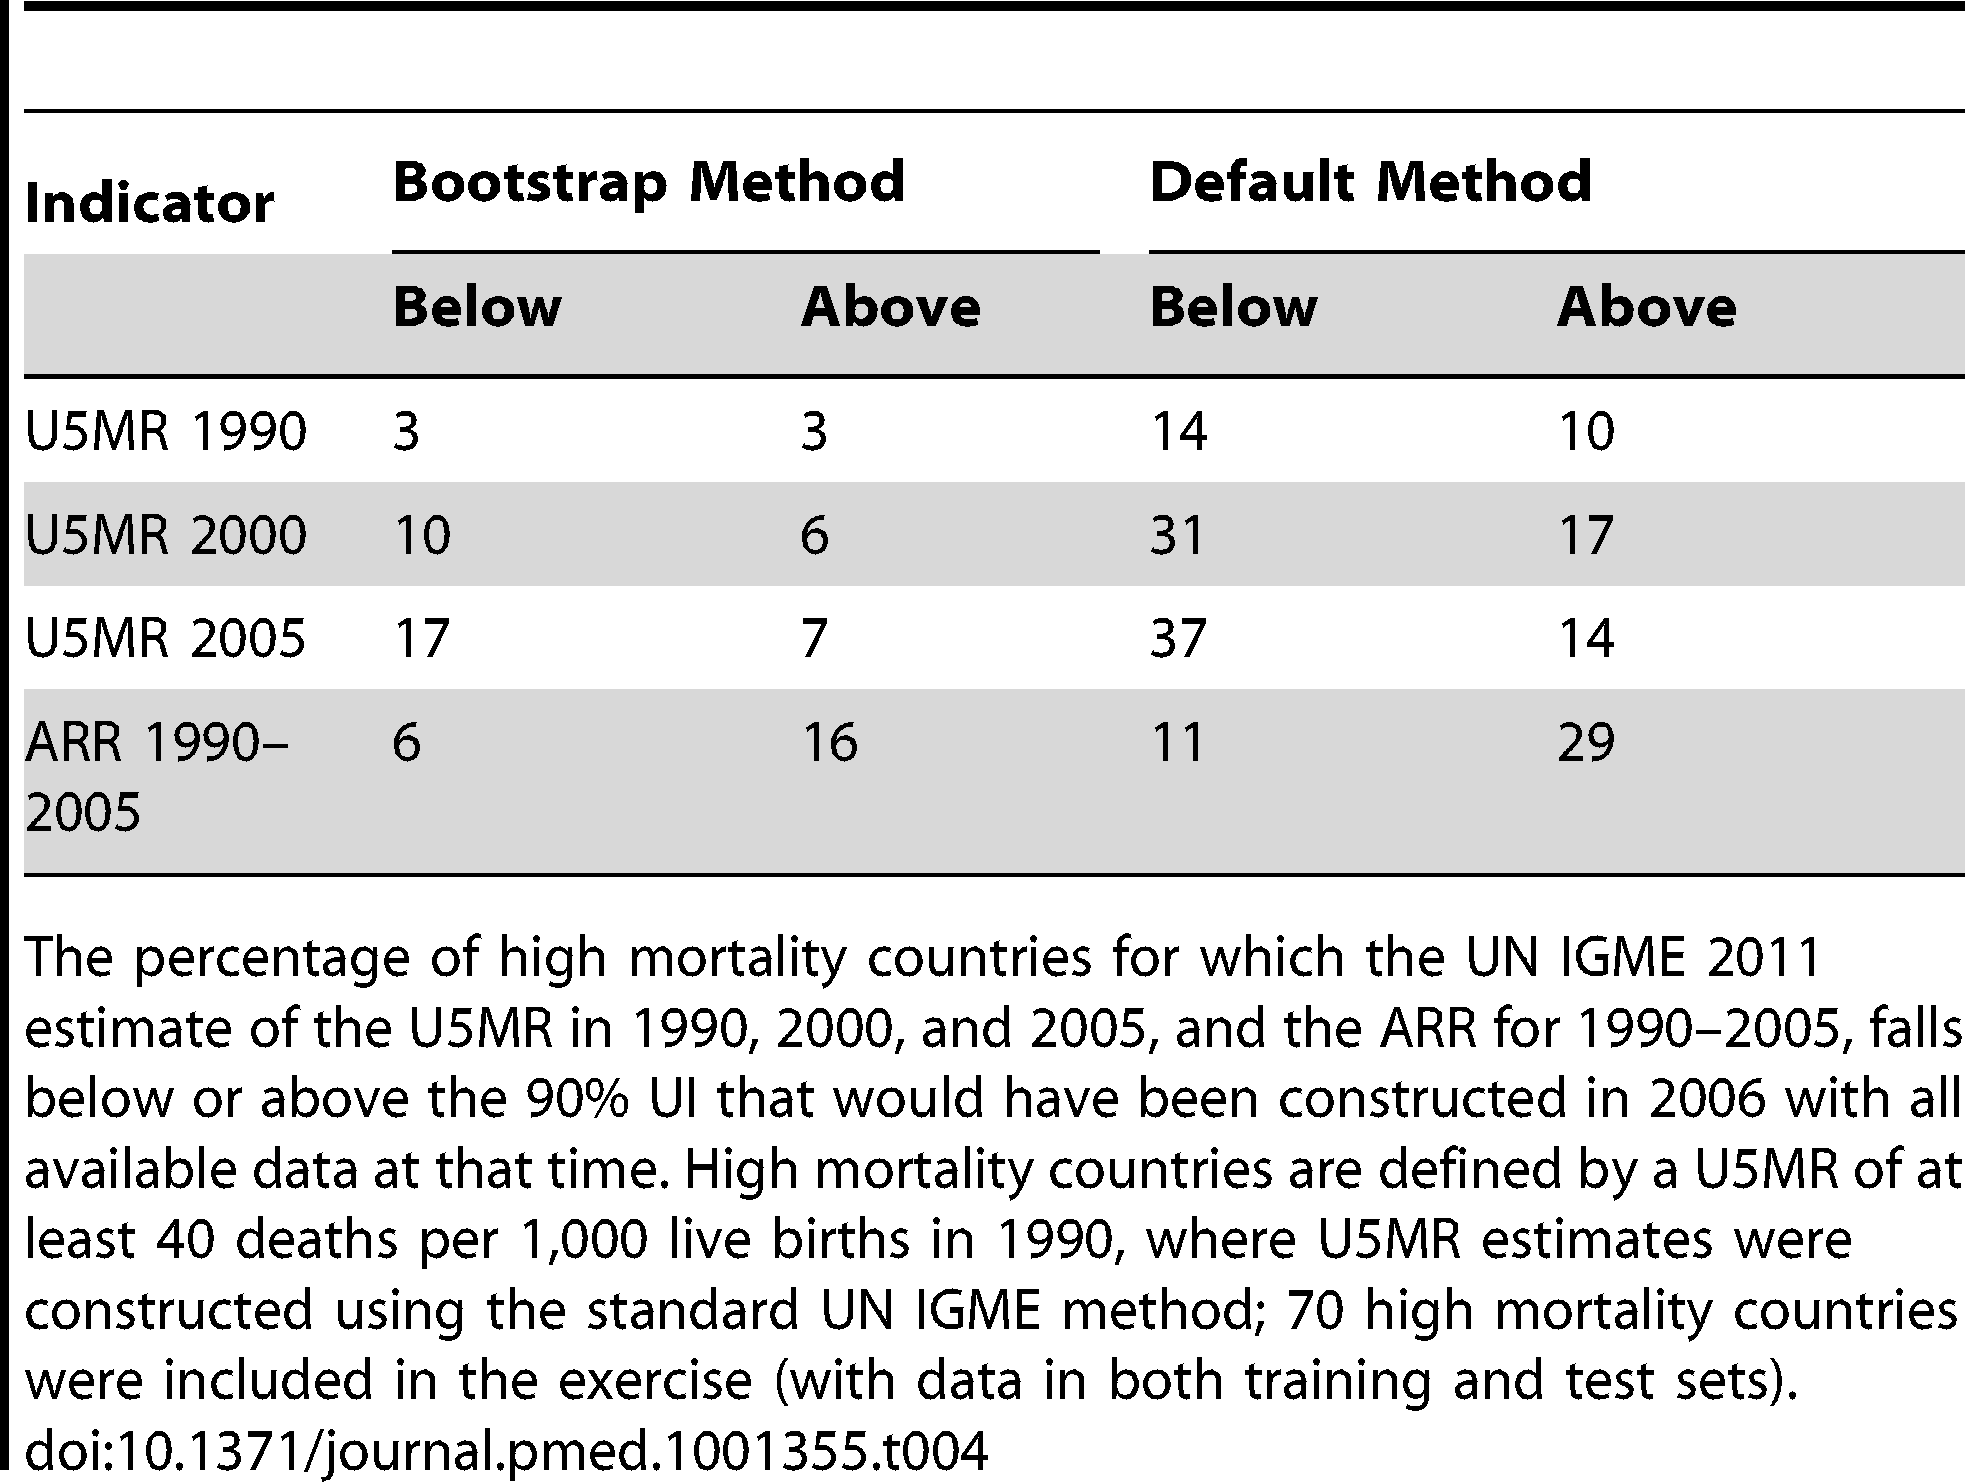 Validation results for the bootstrap method and the default method for high mortality countries based on the 2011 dataset.